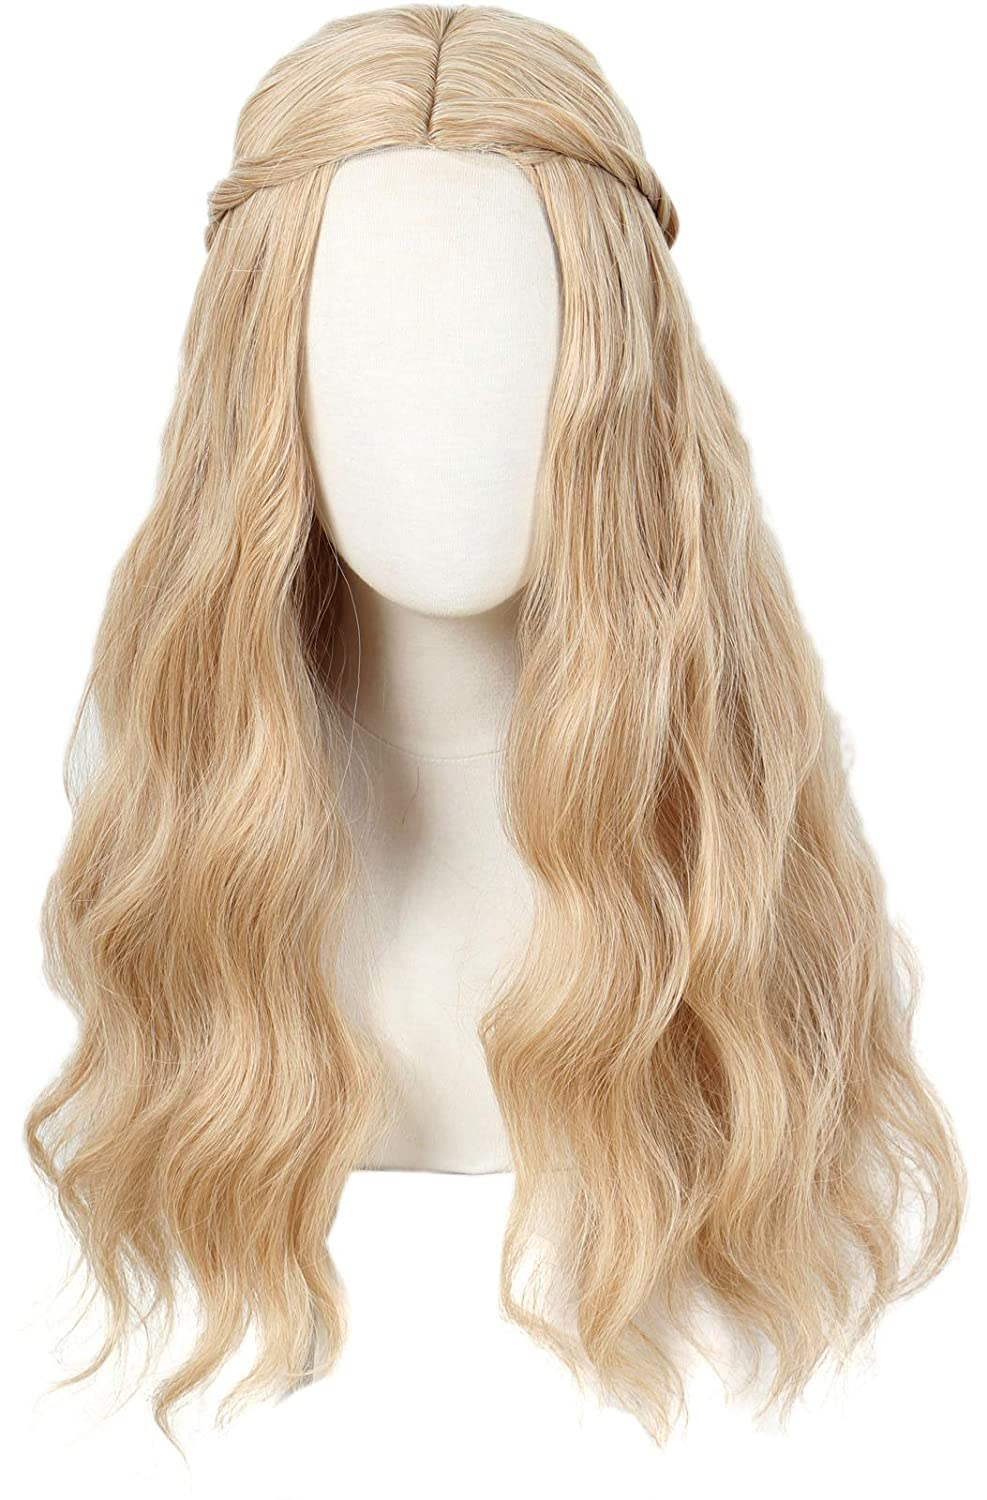 Linfairy Long Wavy Max 60% OFF Wigs Halloween Wig Cosplay Costume Women Limited time trial price for